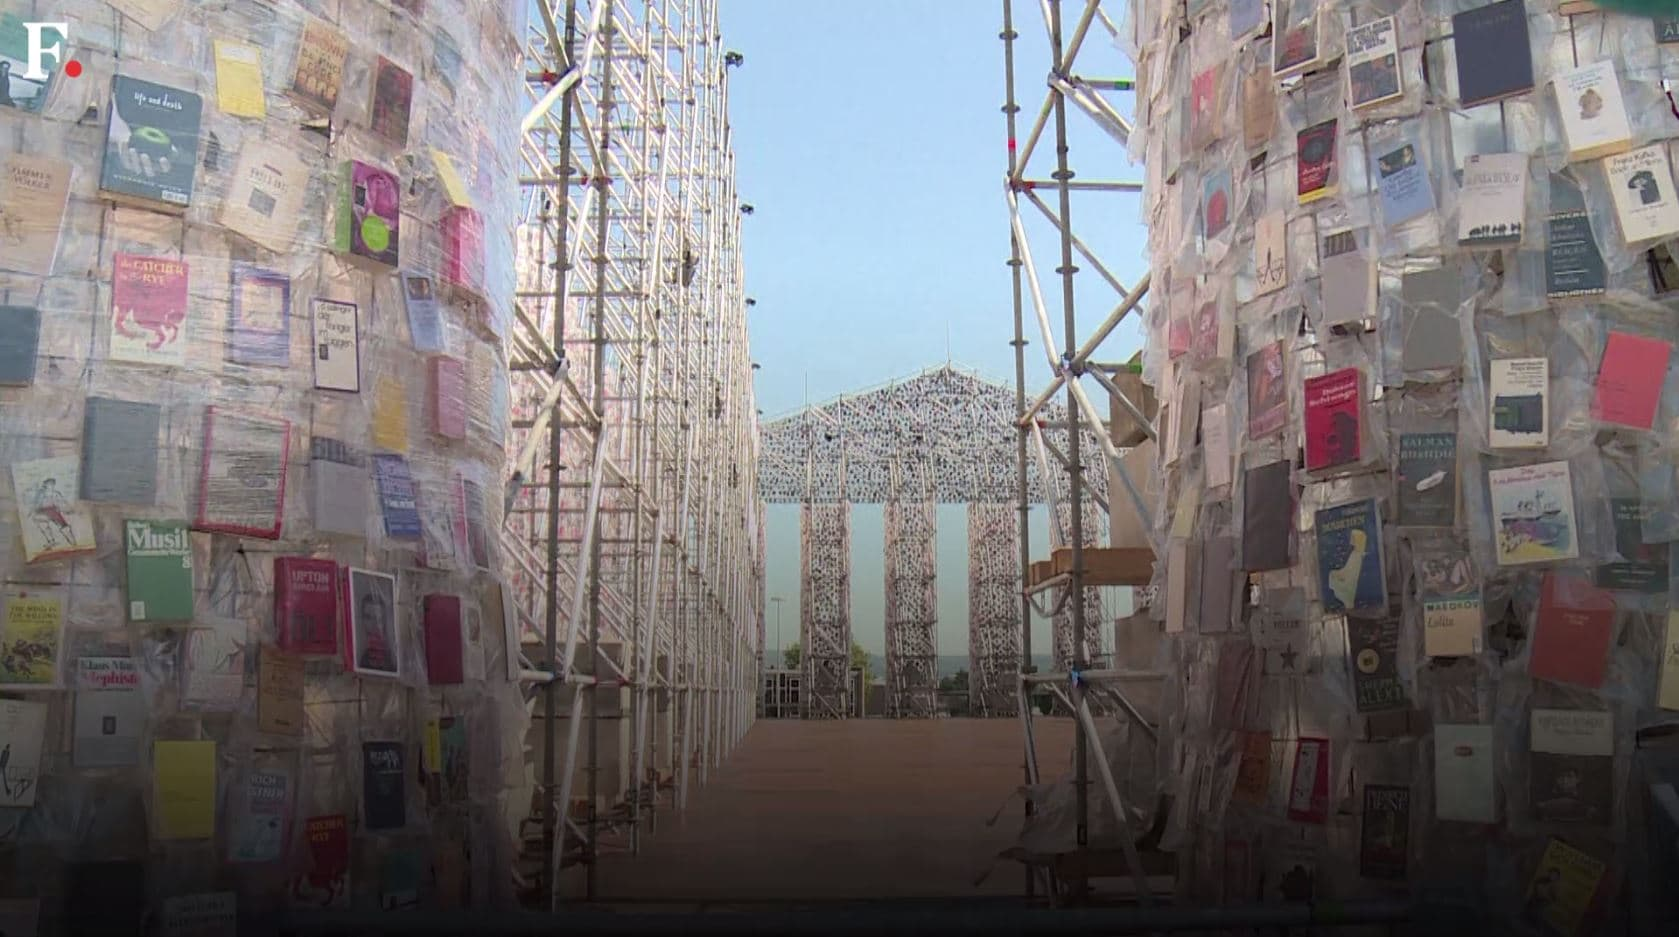 Watch: The 'Parthenon of Books' a monumental artwork to protest censorship